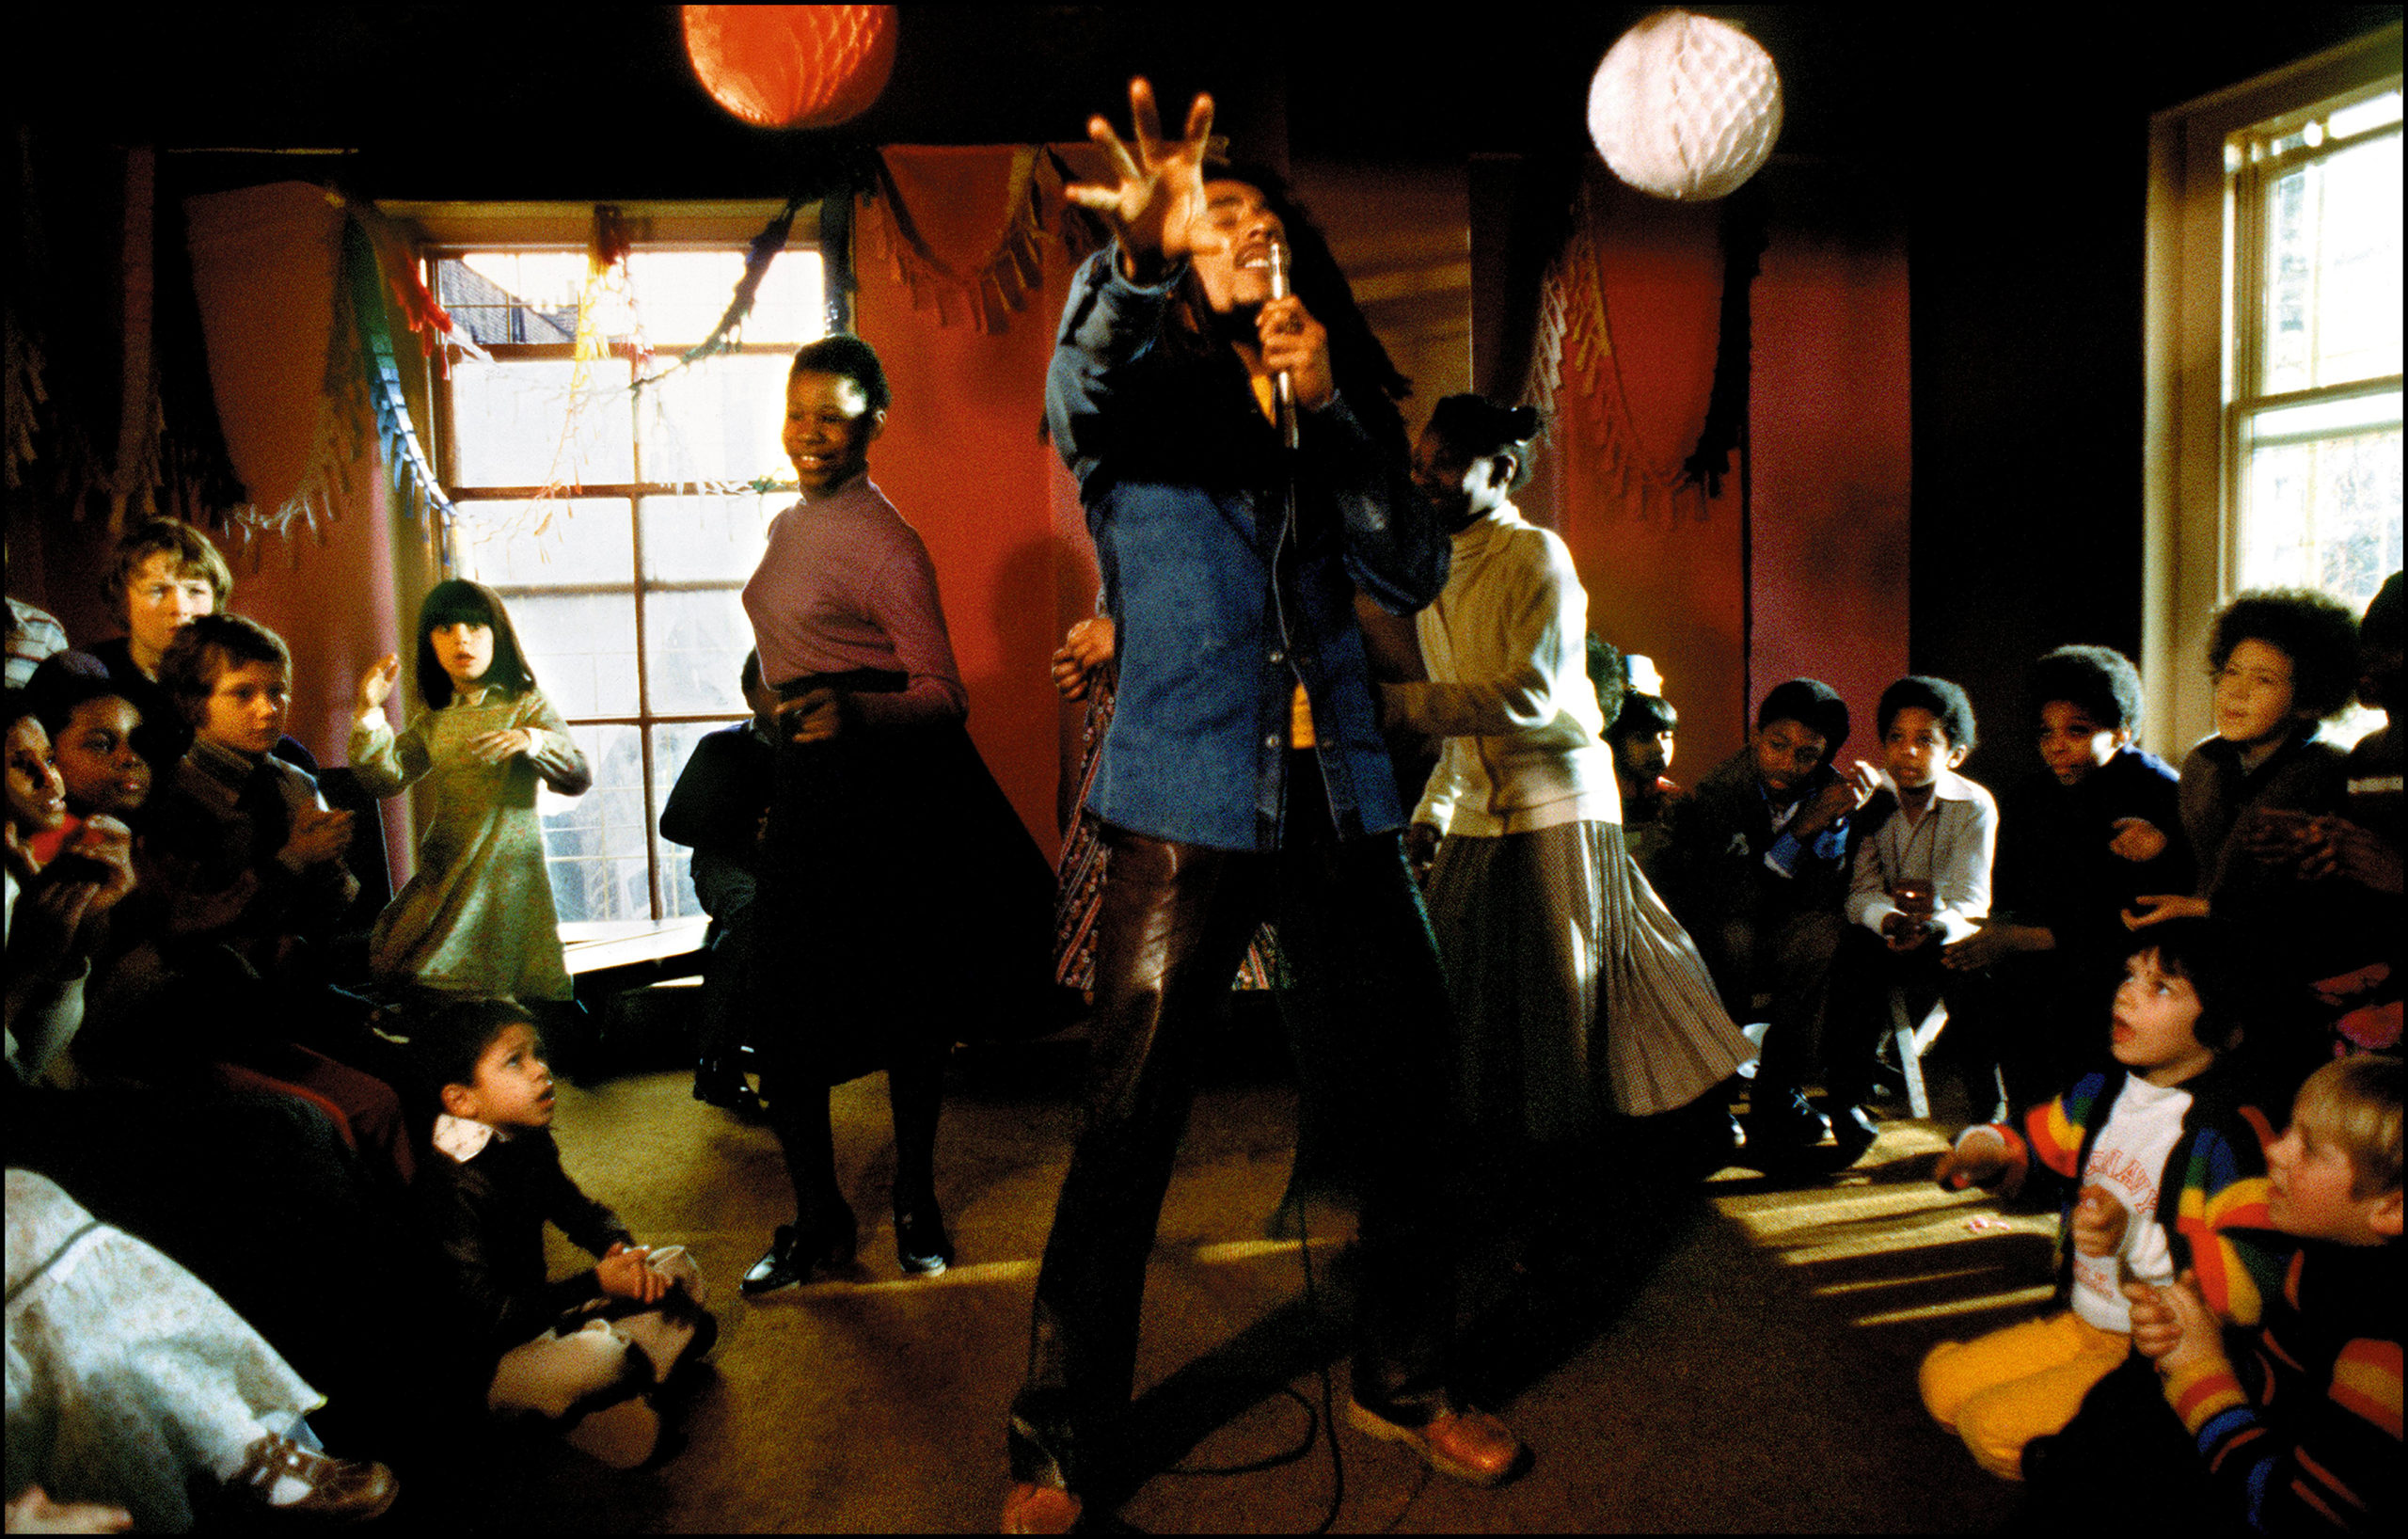 Bob Marley sings into a microphone as two girls dance behind him and children sit and watch.